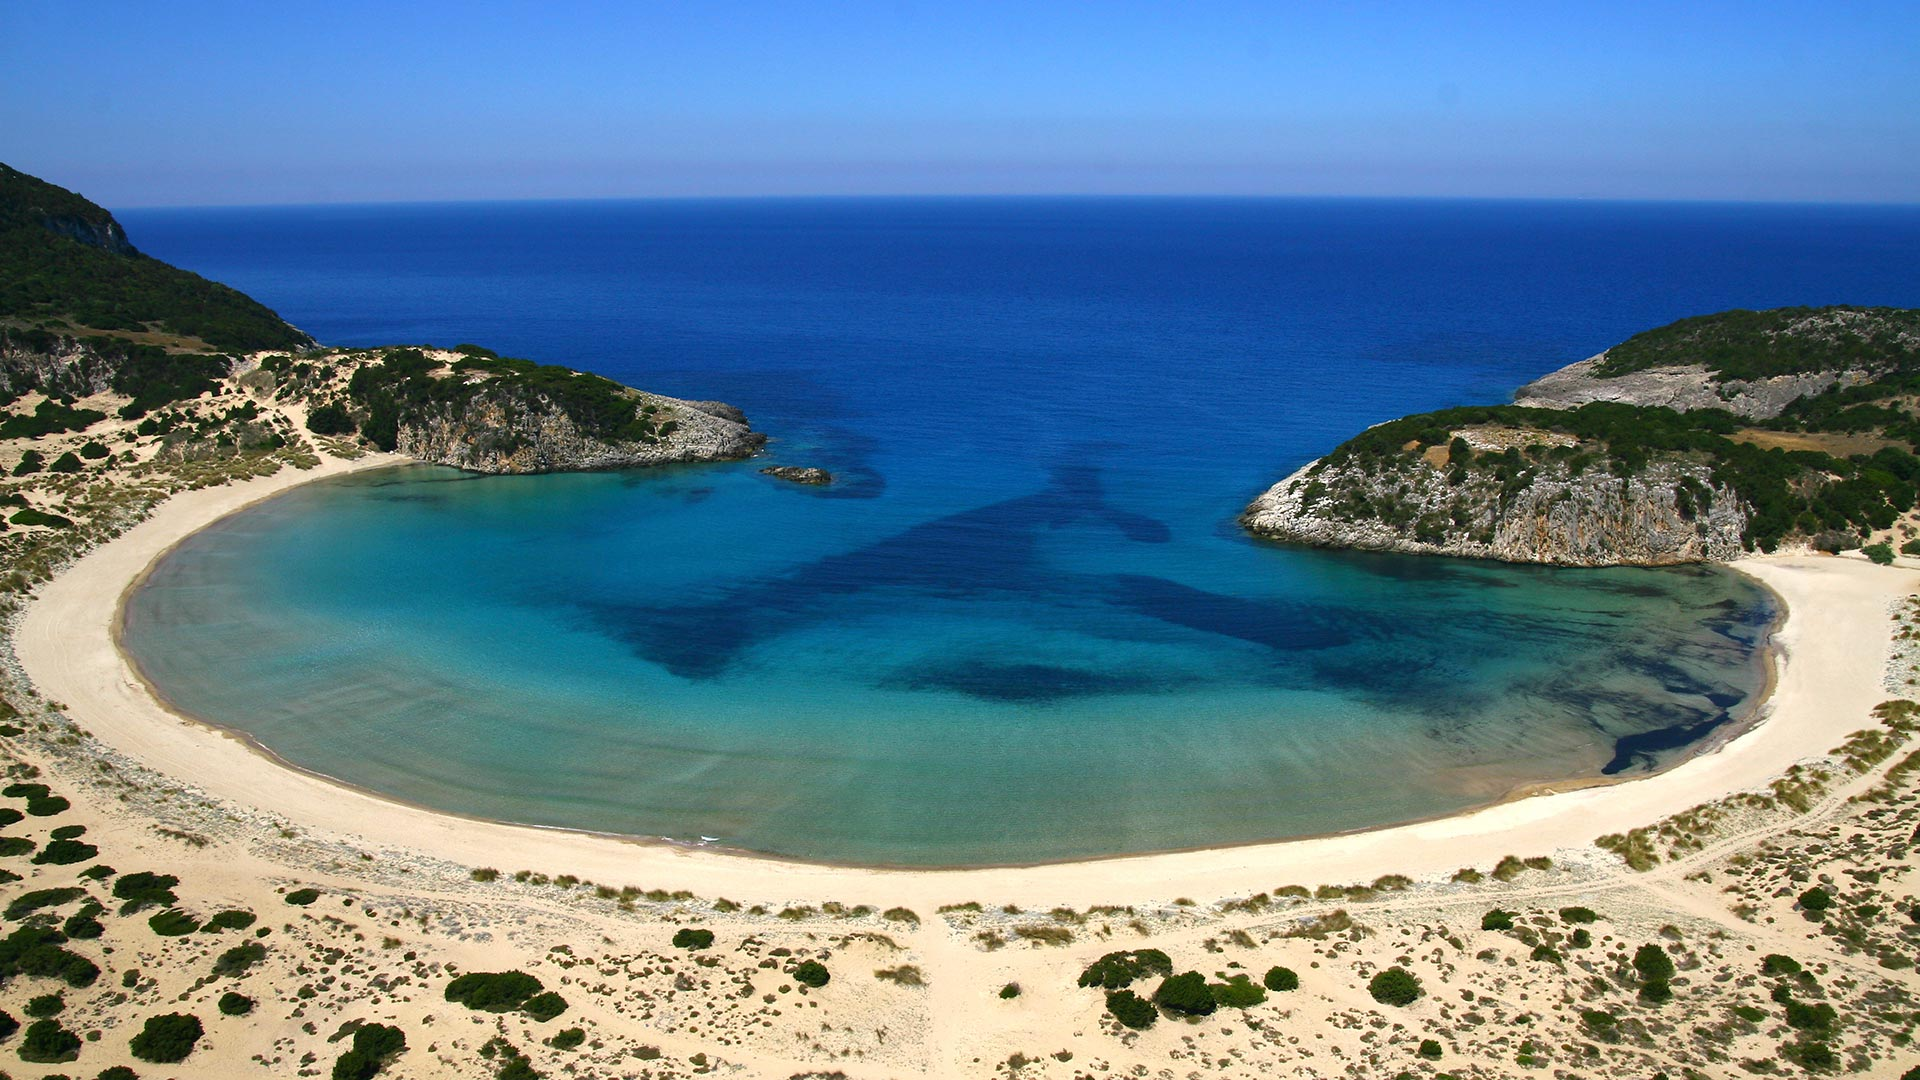 Pylos, Greece - Monterrasol private tours to Pylos, Greece. Travel agency offers custom private car tours to see Pylos in Greece. Order custom private tour to Pylos with departure date on request.